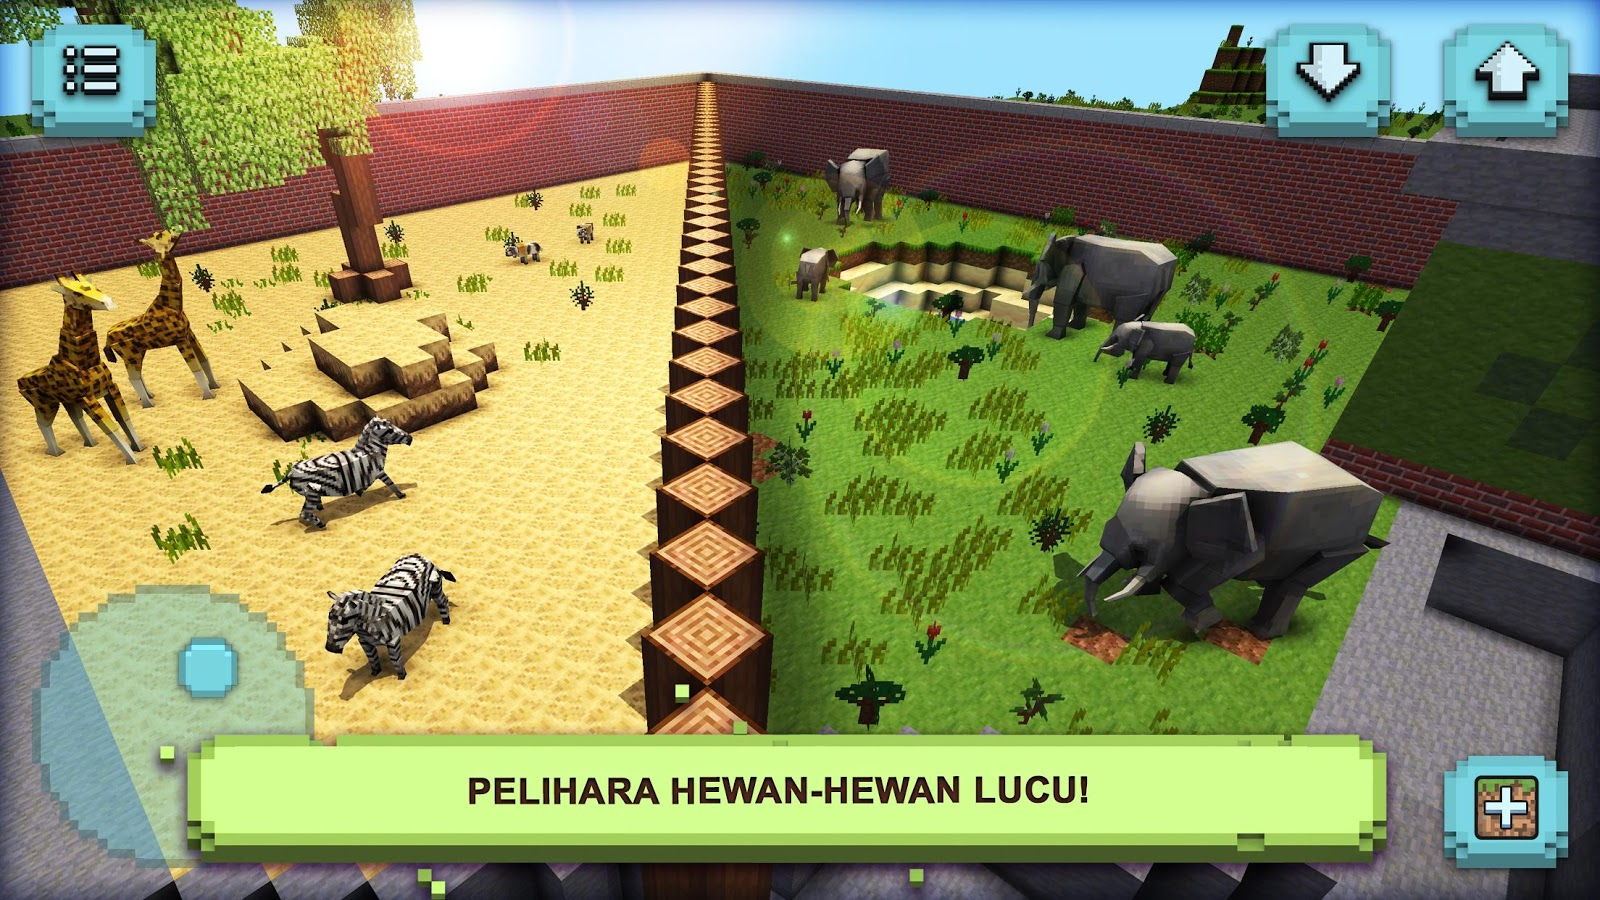 Game Kebun Binatang Hewan Apl Android Di Google Play